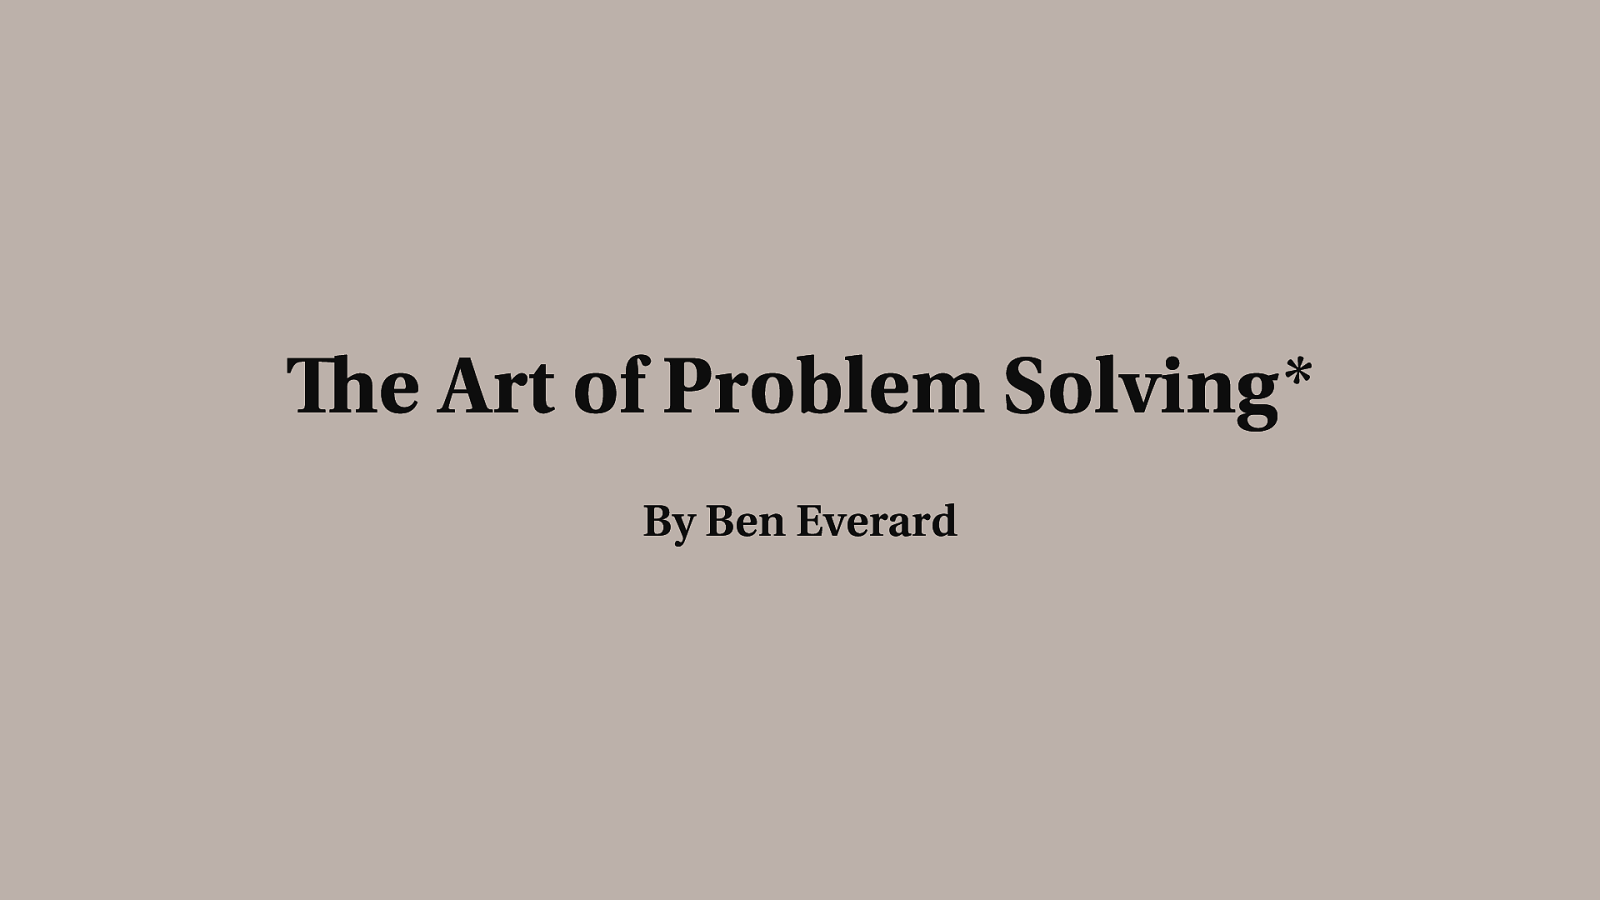 The Art of Problem Solving*